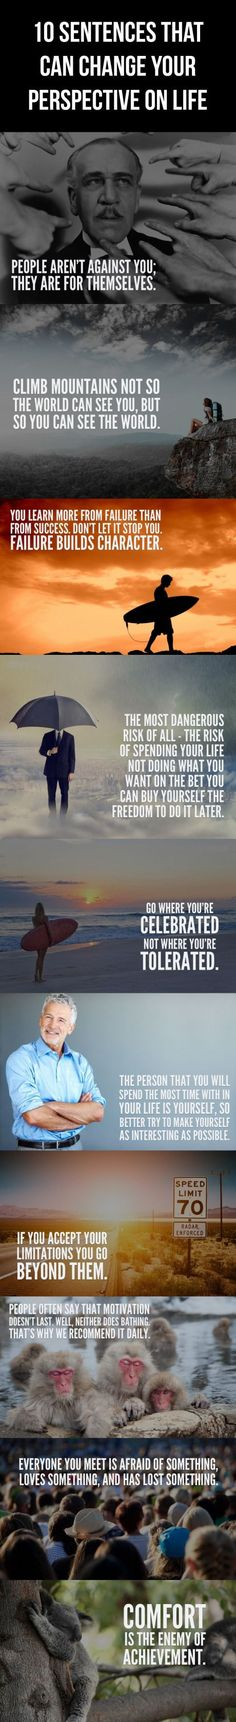 10 Statements That Can Change Your Perspective On Life